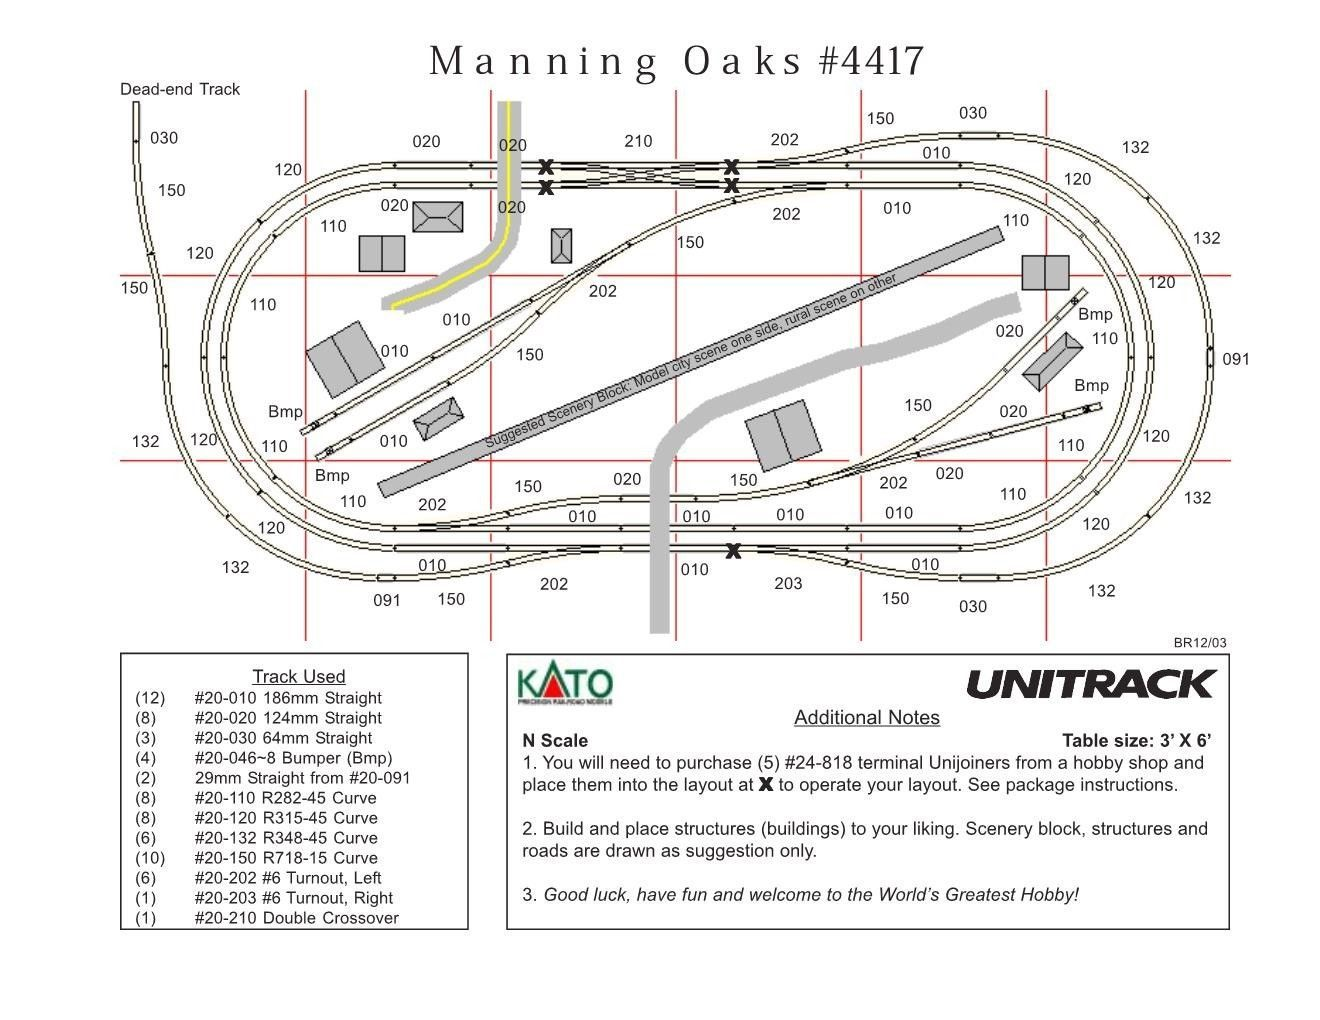 Kato Signal Wiring Diagram Schematics Track Light N Scale Manning Oaks Unitrack Layout Train Set Fog